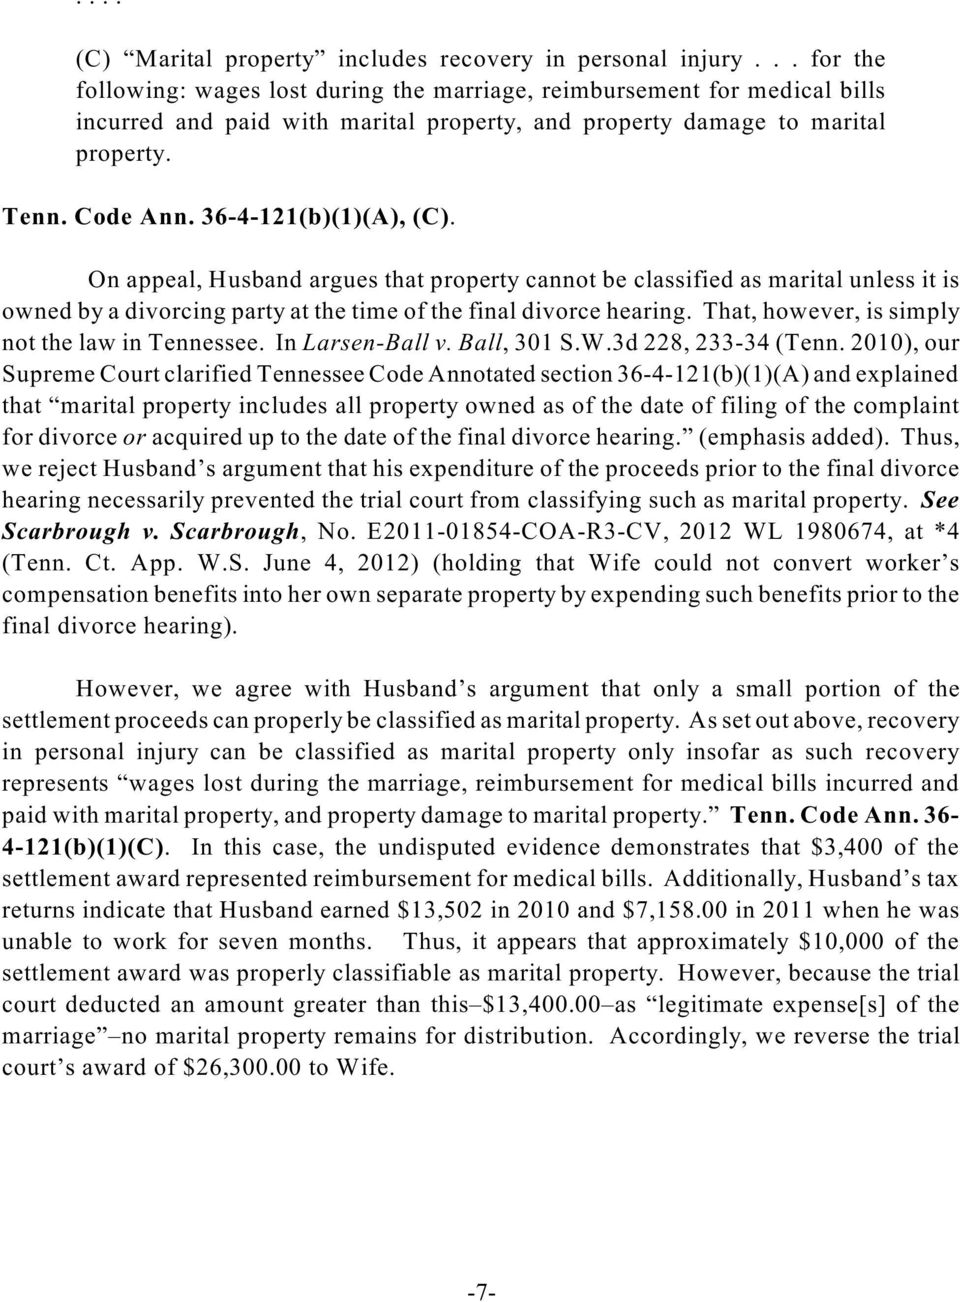 36-4-121(b)(1)(A), (C). On appeal, Husband argues that property cannot be classified as marital unless it is owned by a divorcing party at the time of the final divorce hearing.